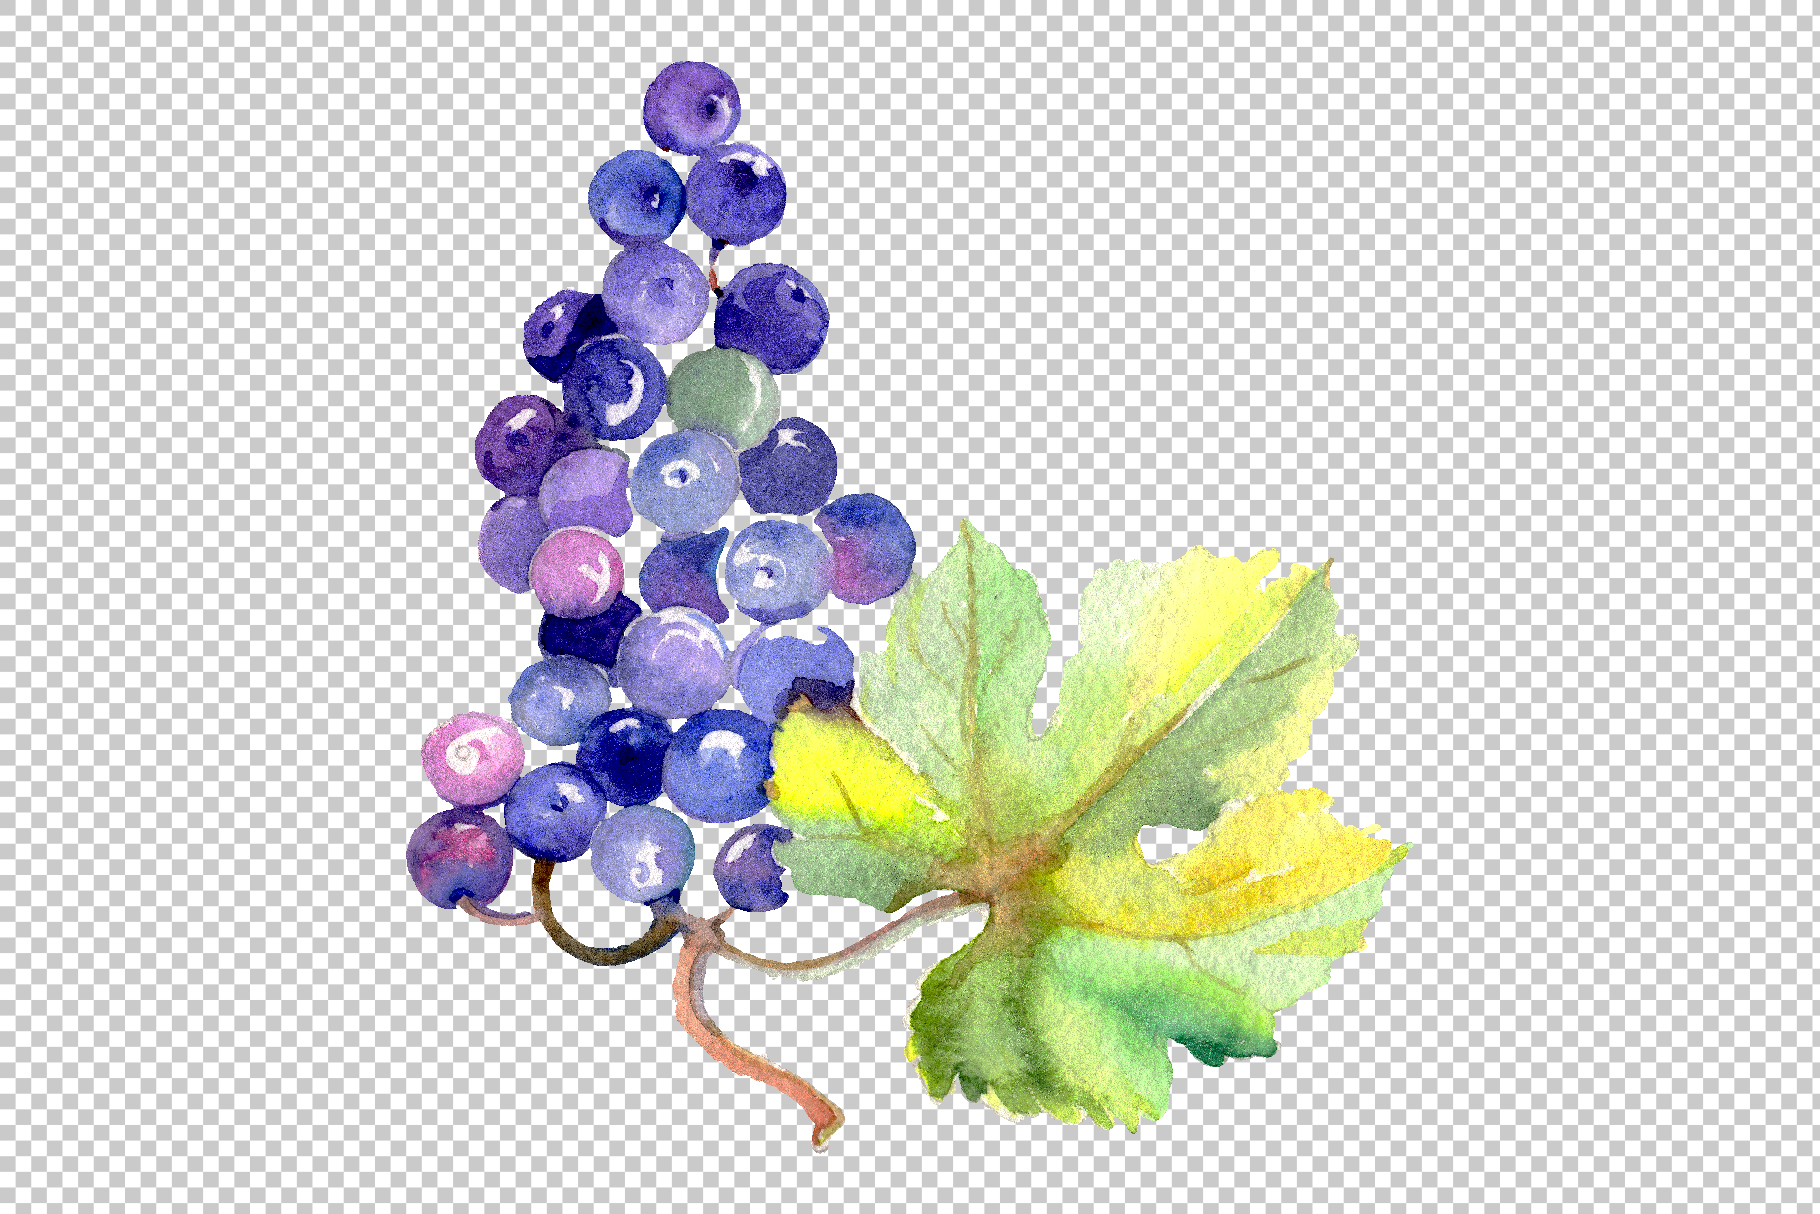 Grapes Watercolor png example image 8